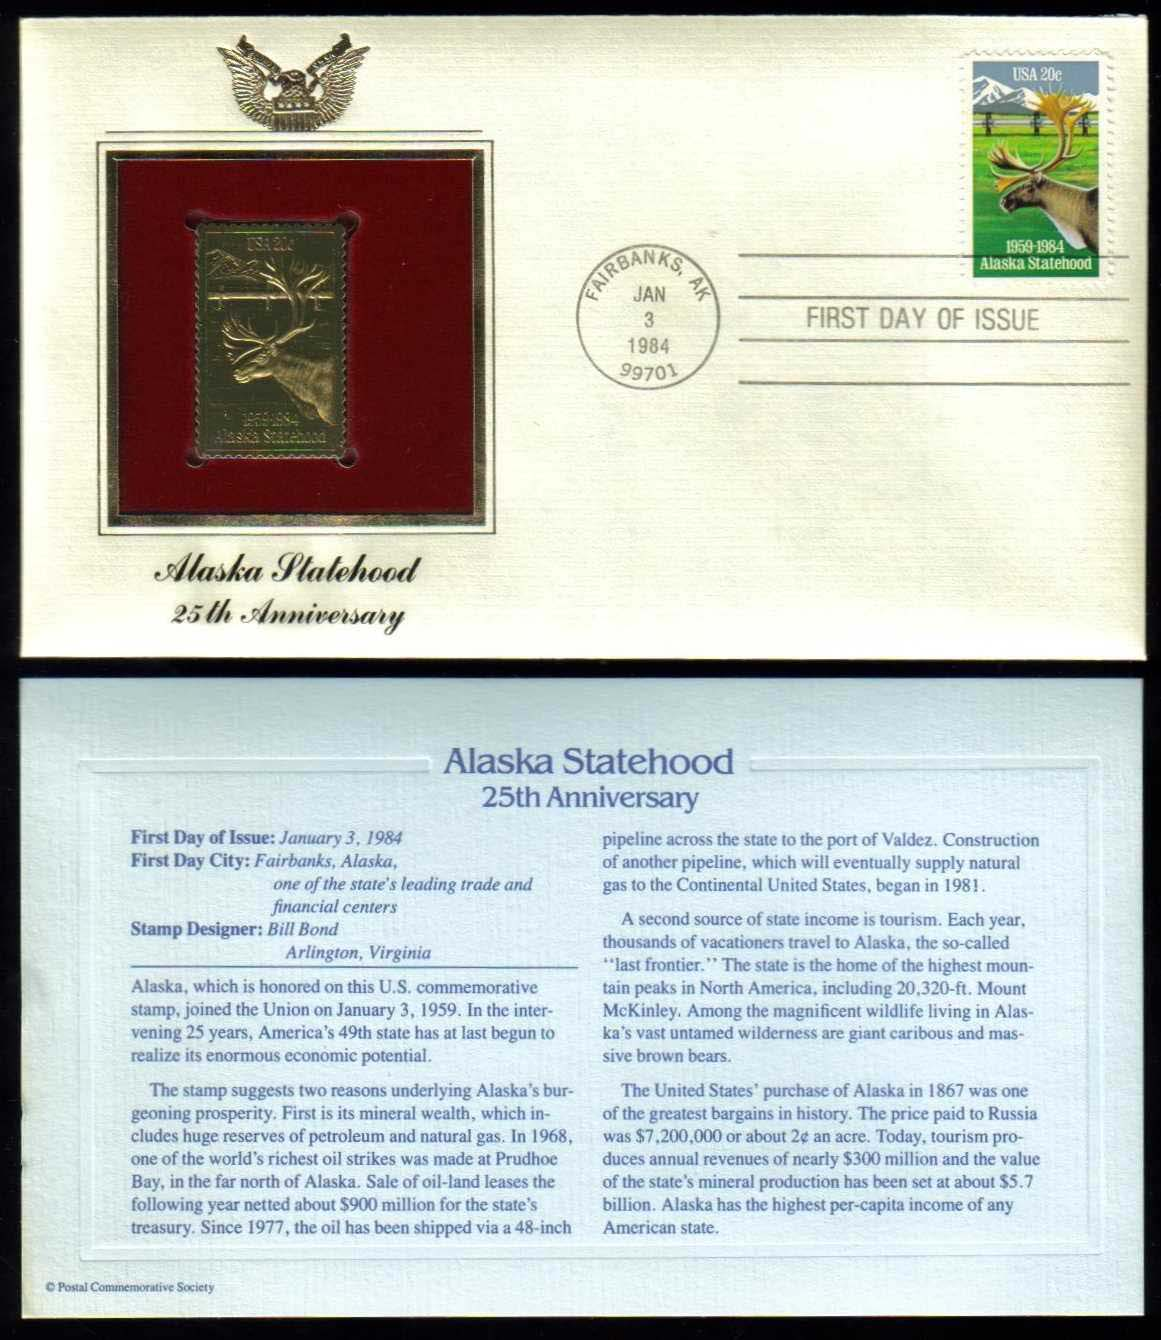 Scott 2066 Golden Replica (22Kt) unaddressed FDC <p> <a href=&quot;/images/USA-Scott-2066-Gold.jpg&quot;><font color=green><b>View the image</a></b></font>